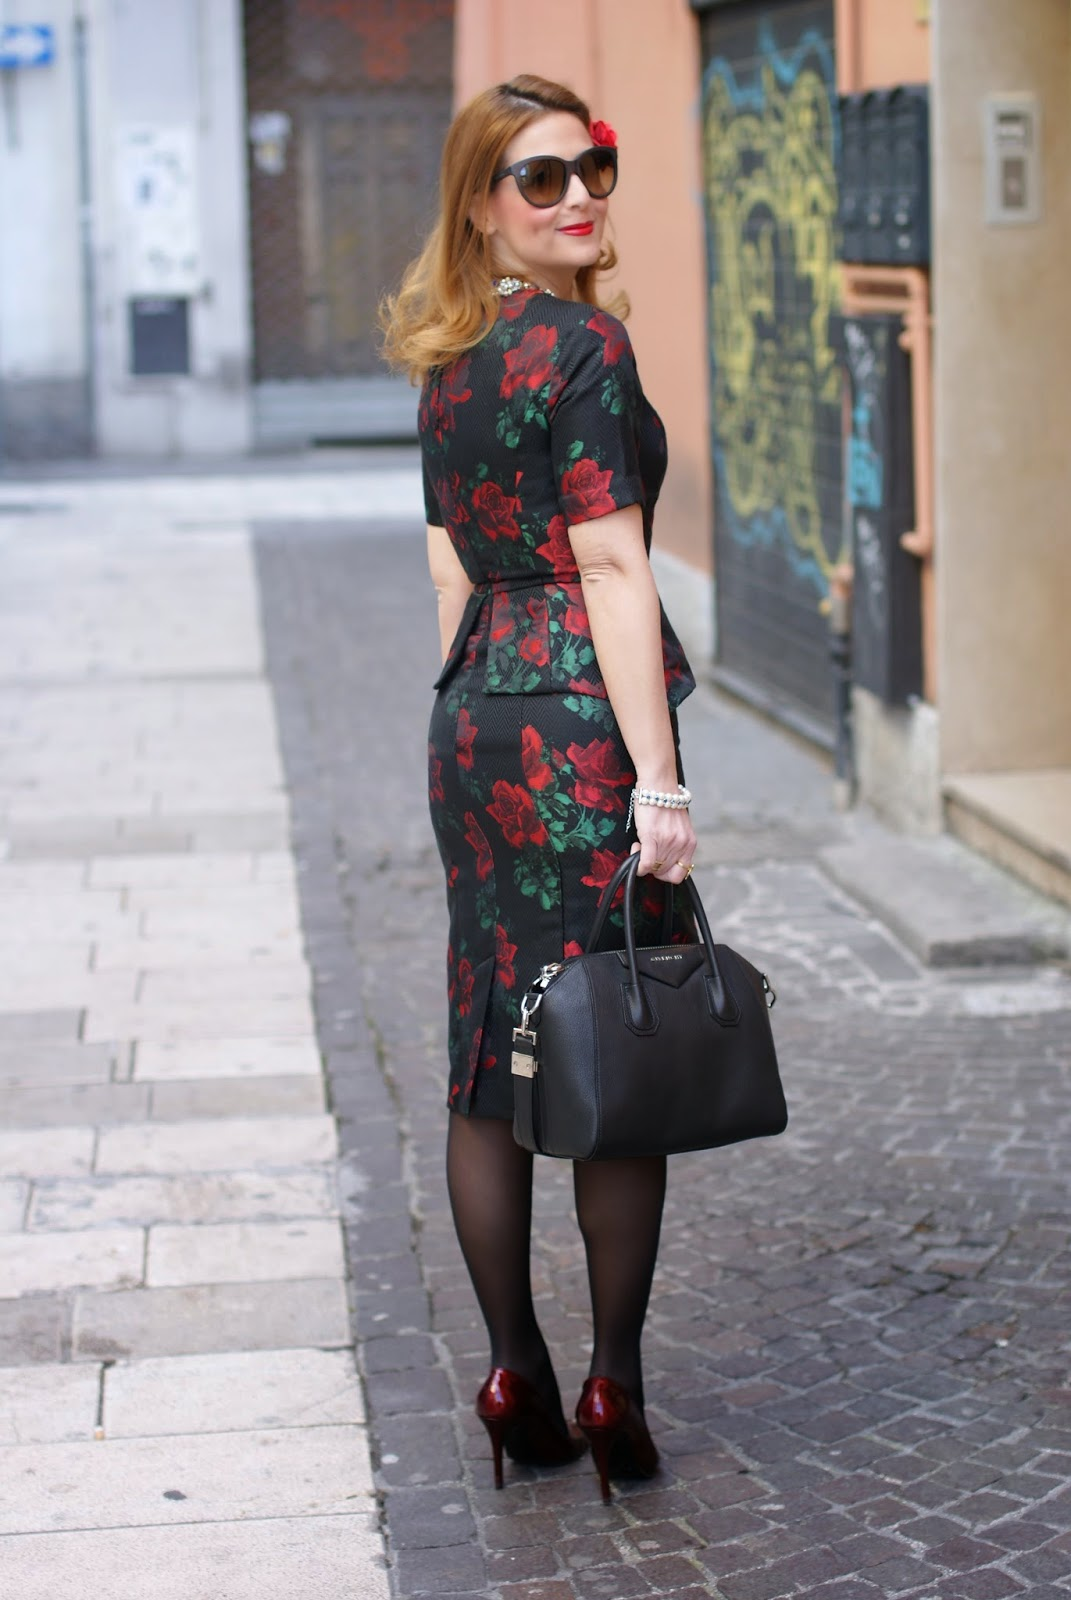 Asos rose print peplum dress seen from the back looking like a Dolce & Gabbana dress on Fashion and Cookies fashion blog